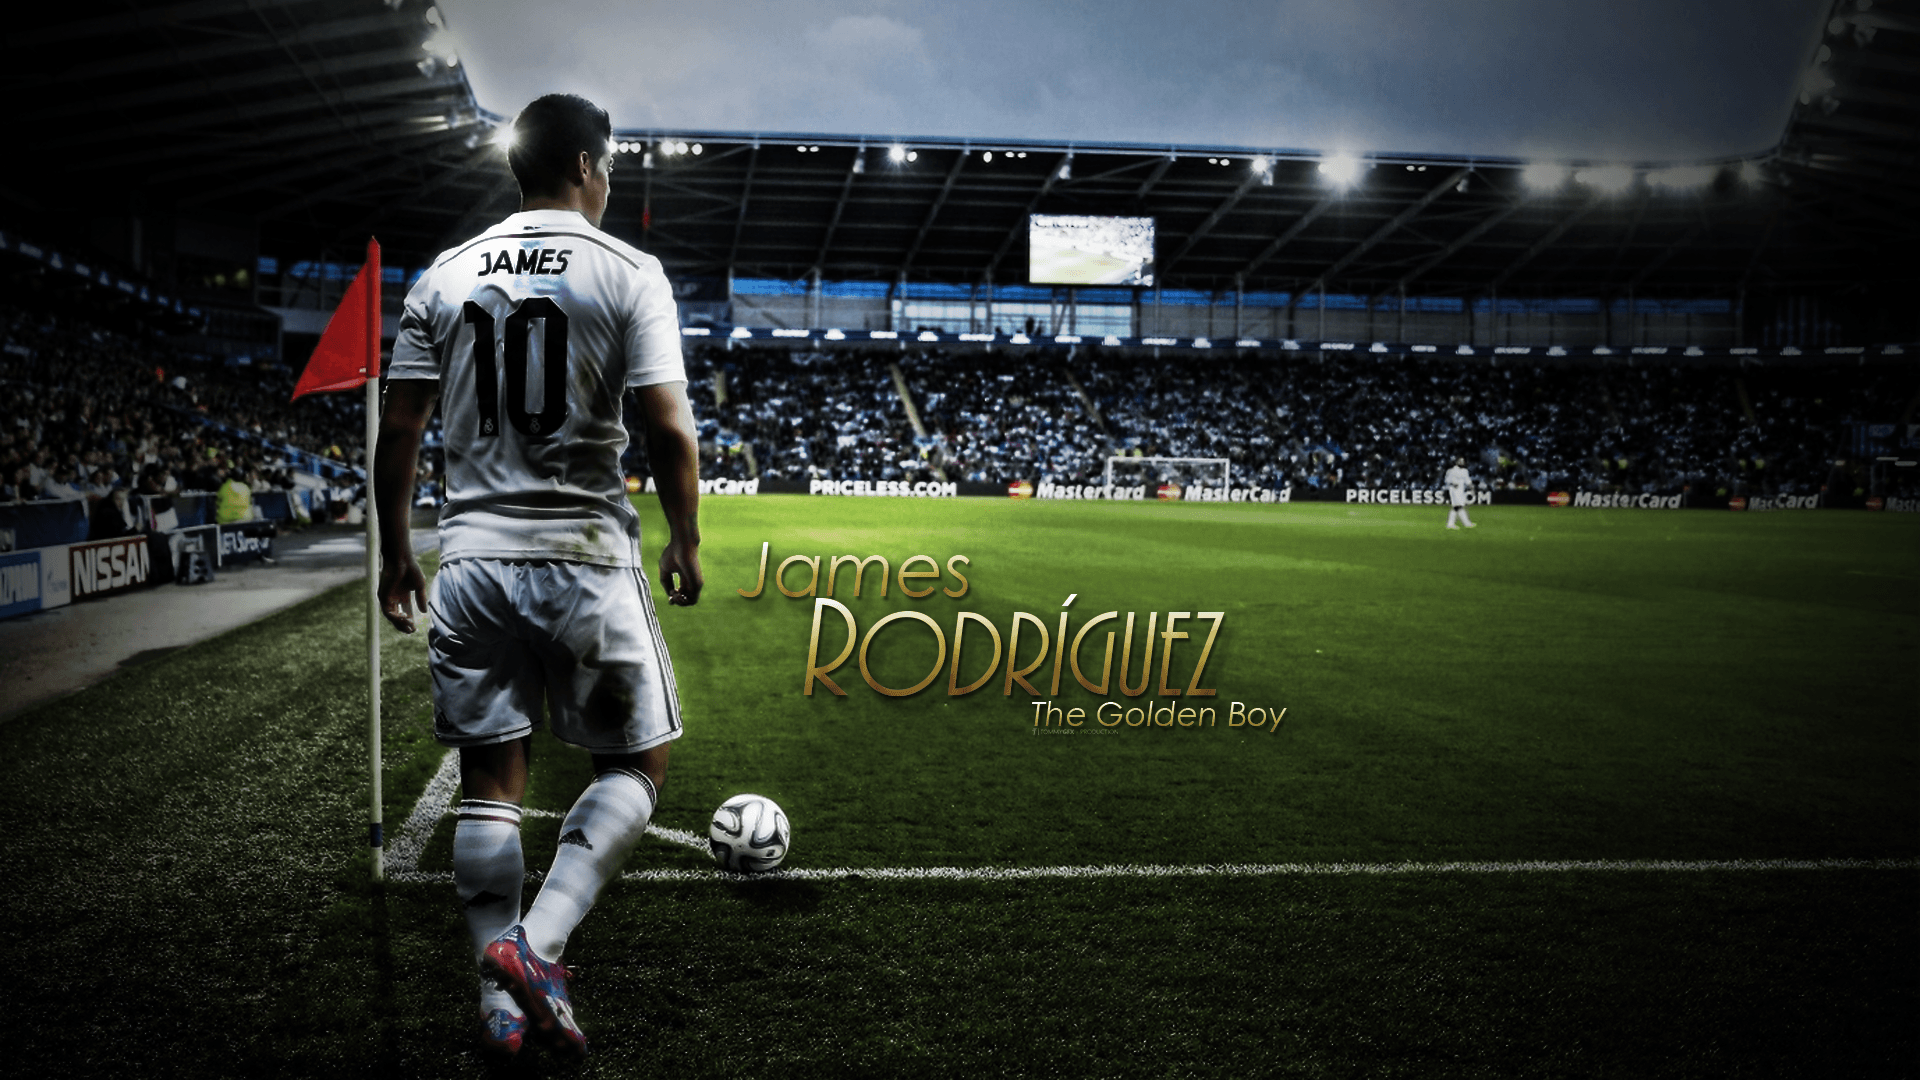 James rodr guez wallpapers wallpaper cave - James rodriguez wallpaper hd ...